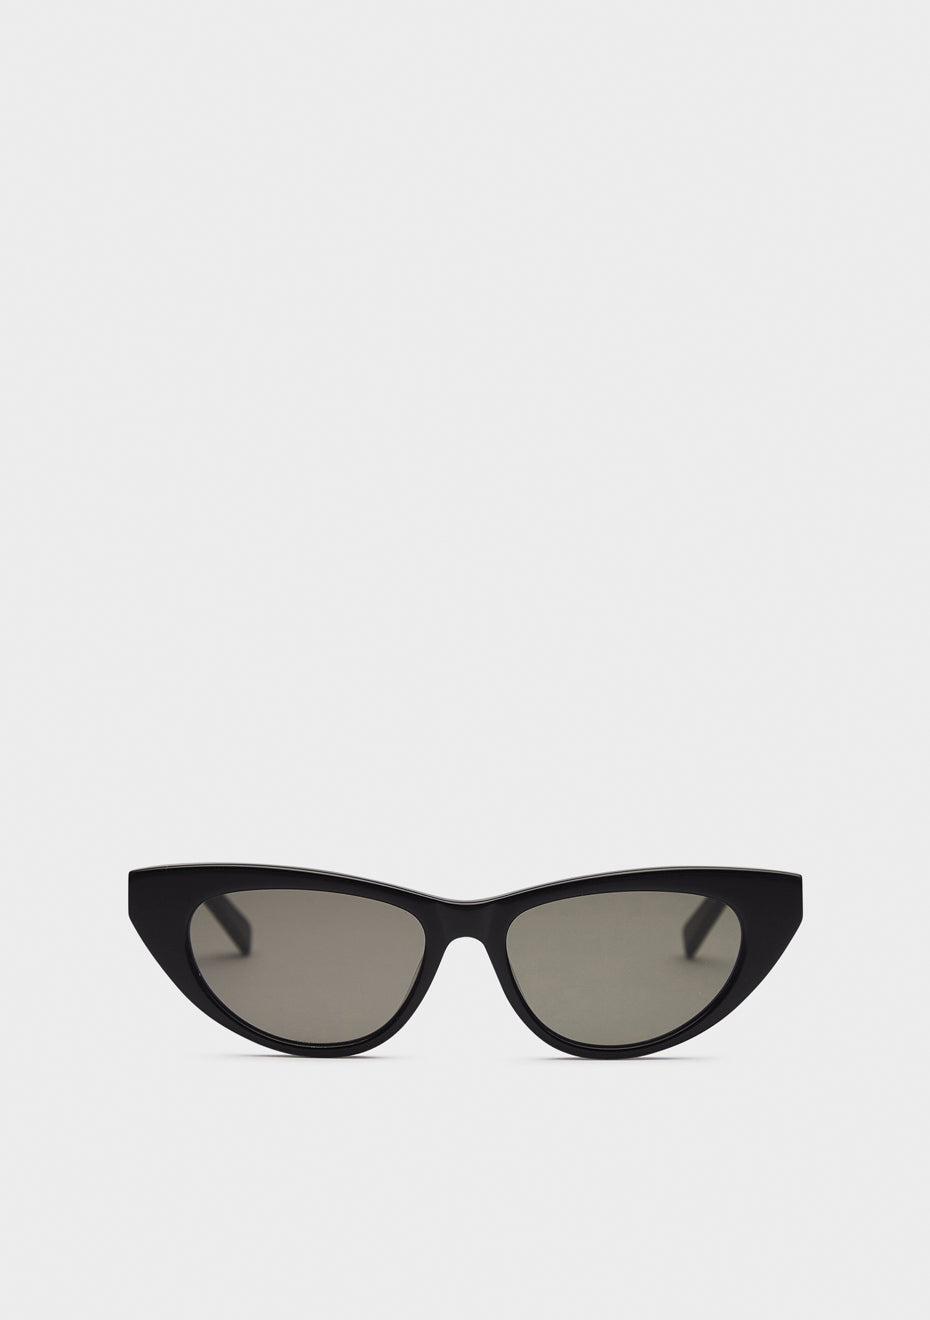 Juhl Black Sunglasses